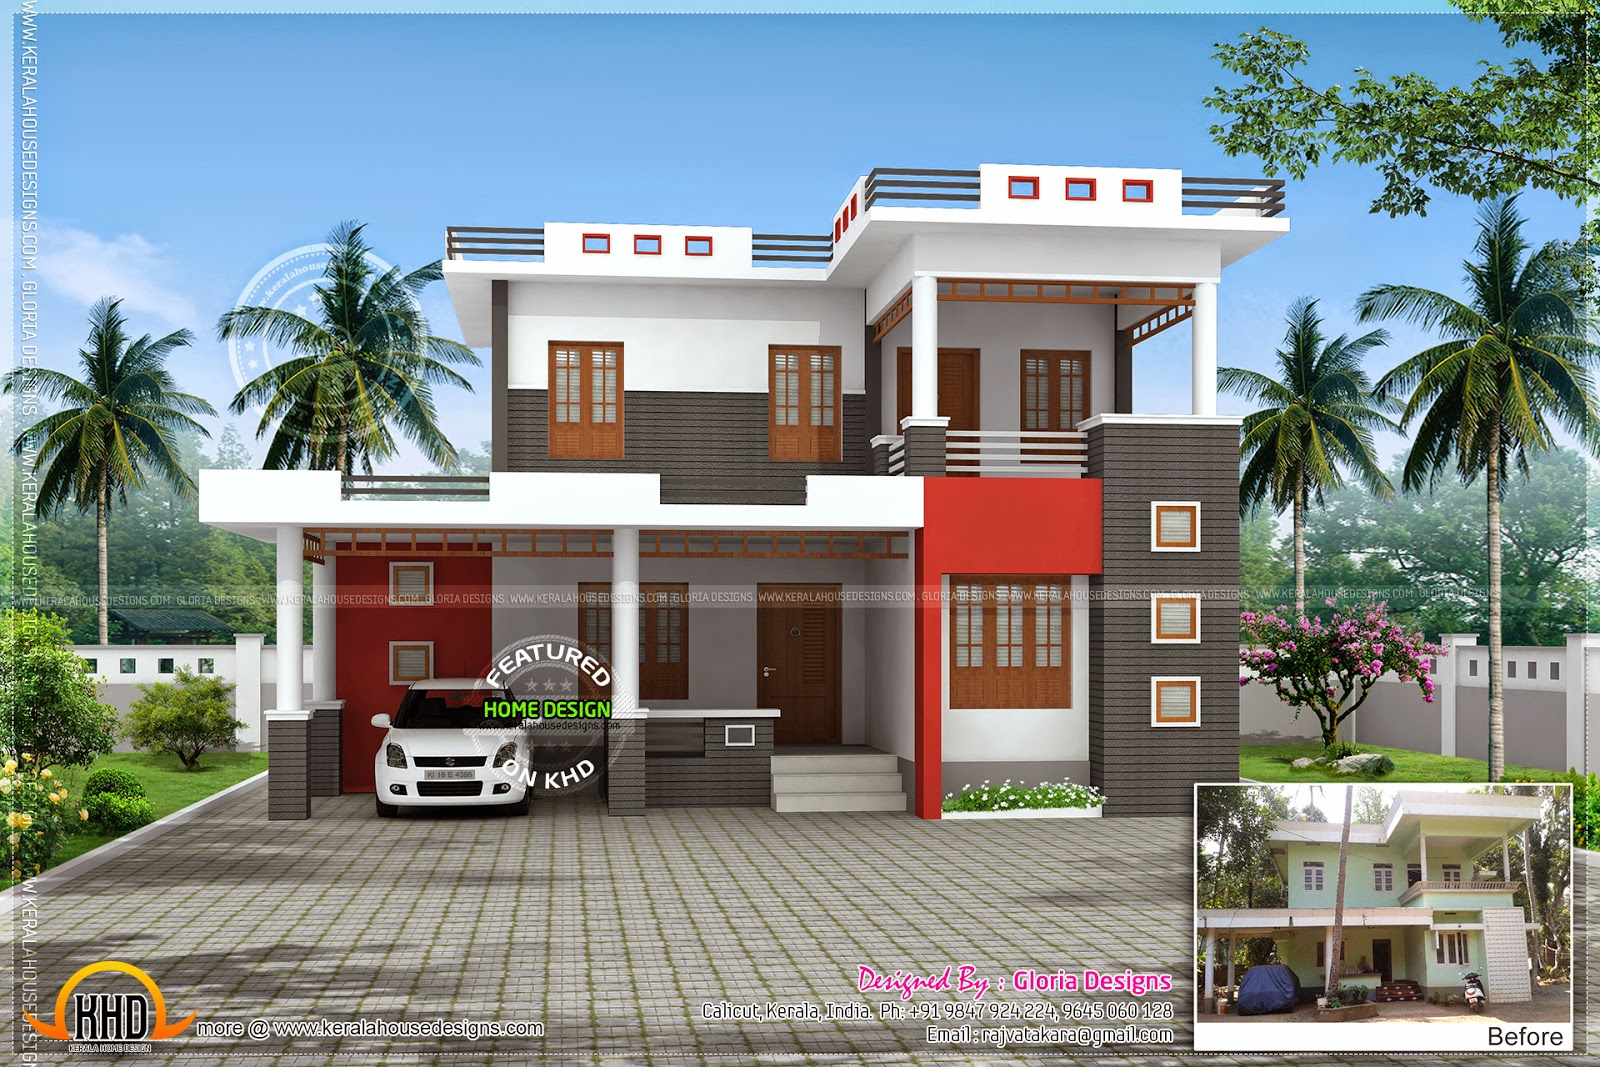 Clasic Colonial Homes Renovation 3d Model For An Old House Kerala Home Design